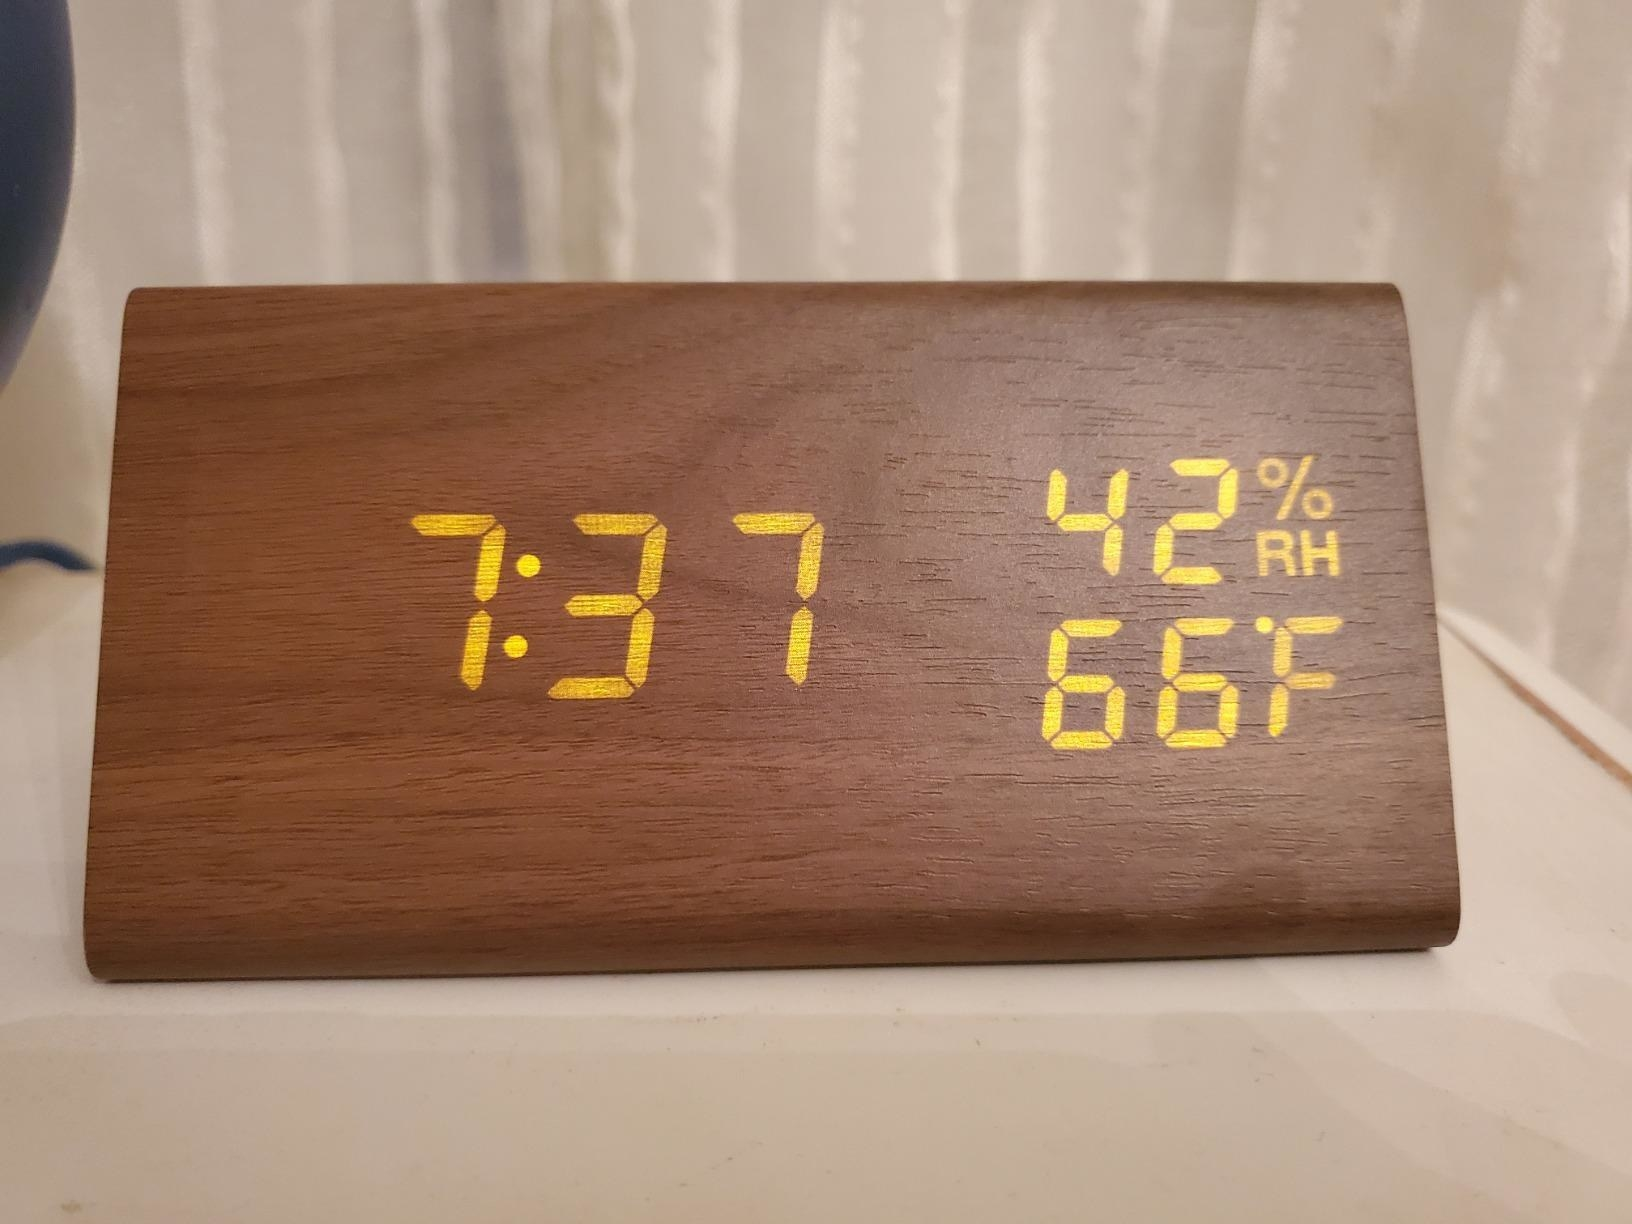 Reviewer image showing plug-in clock with time, humidity, and temperature display